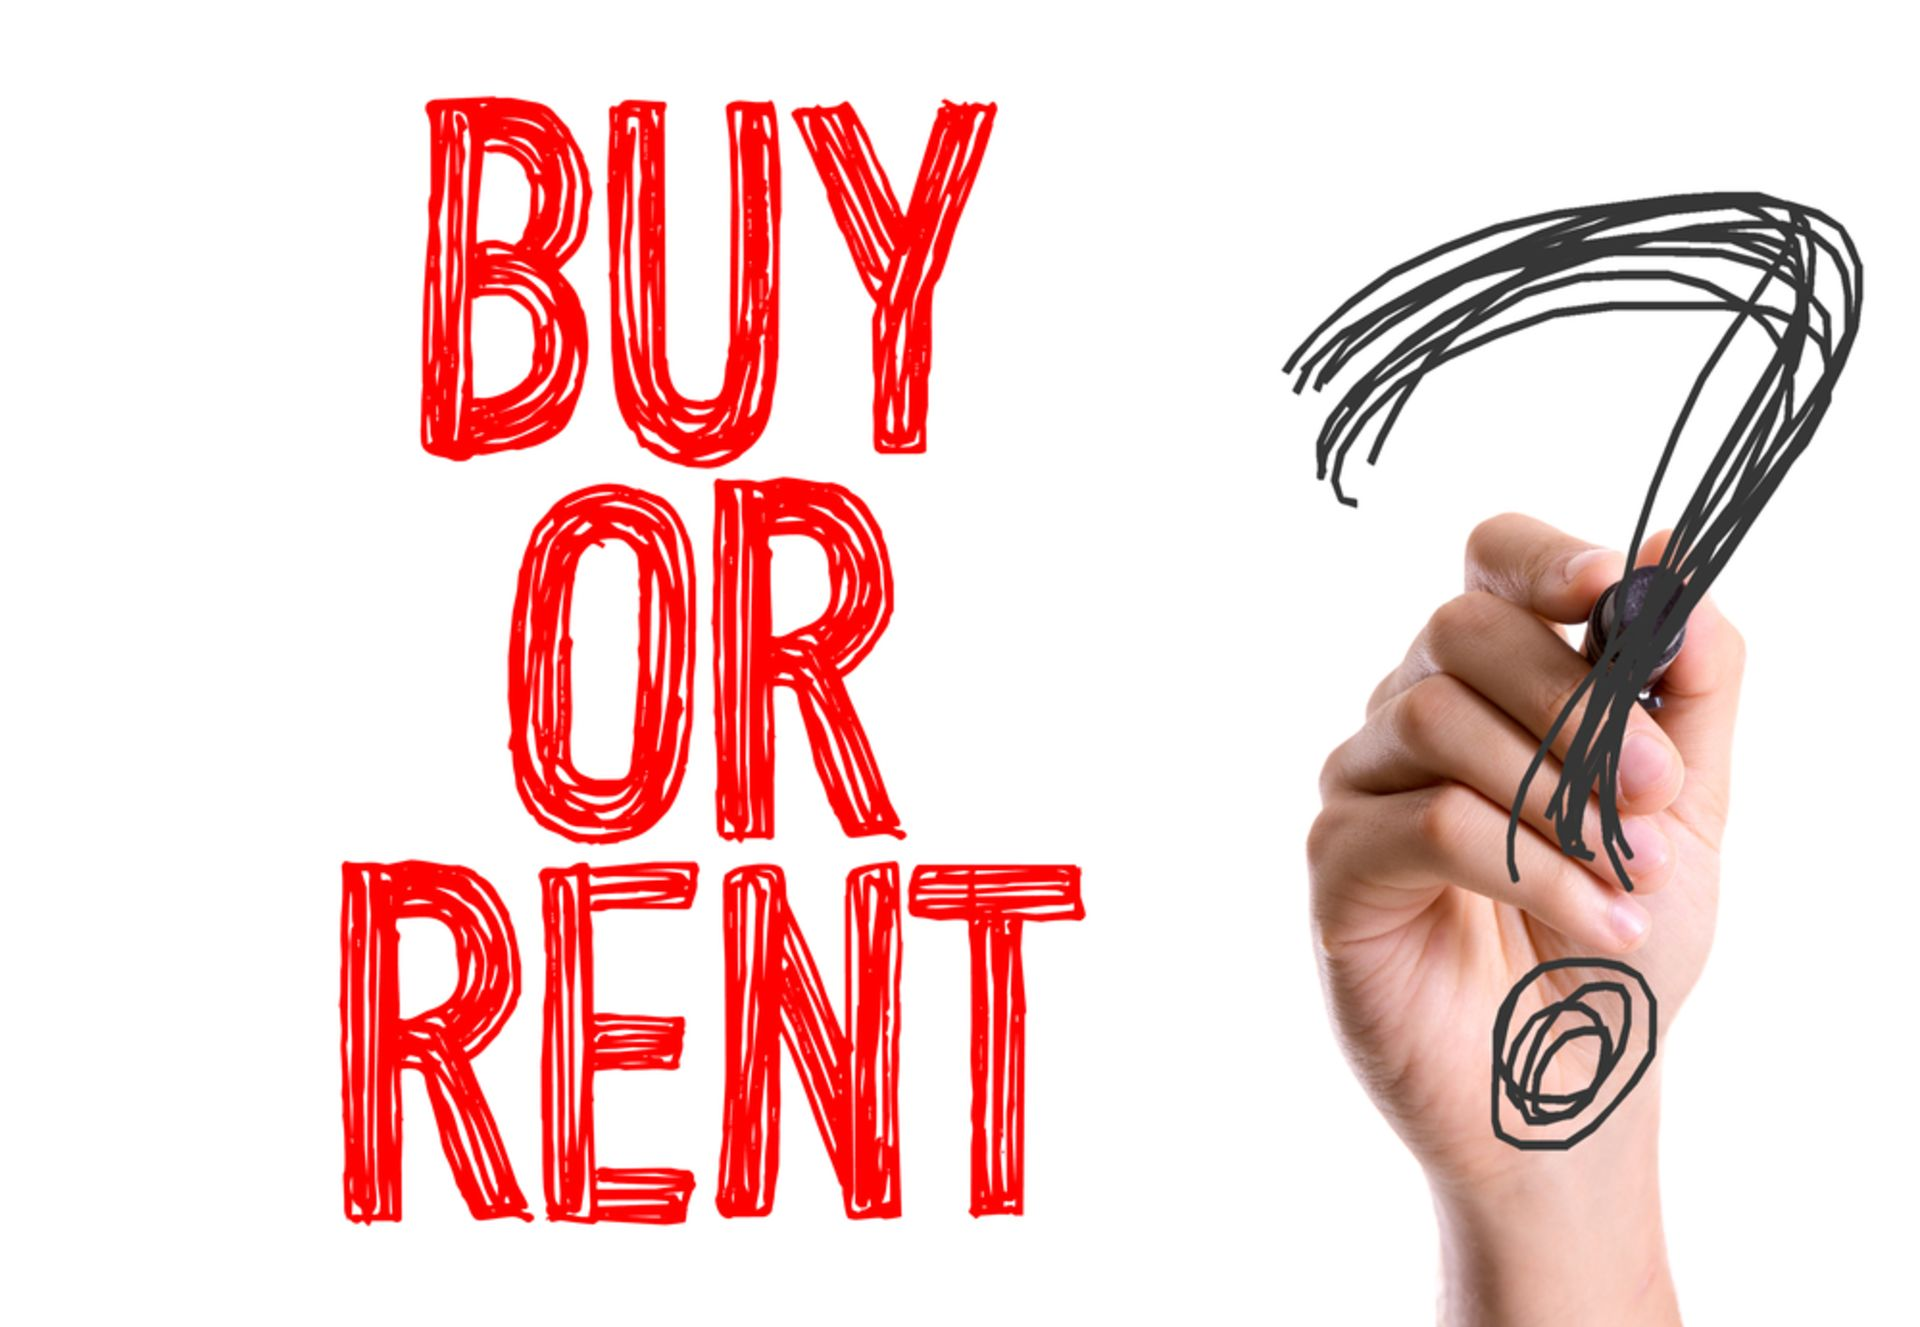 WHY RENT WHEN YOU CAN OWN